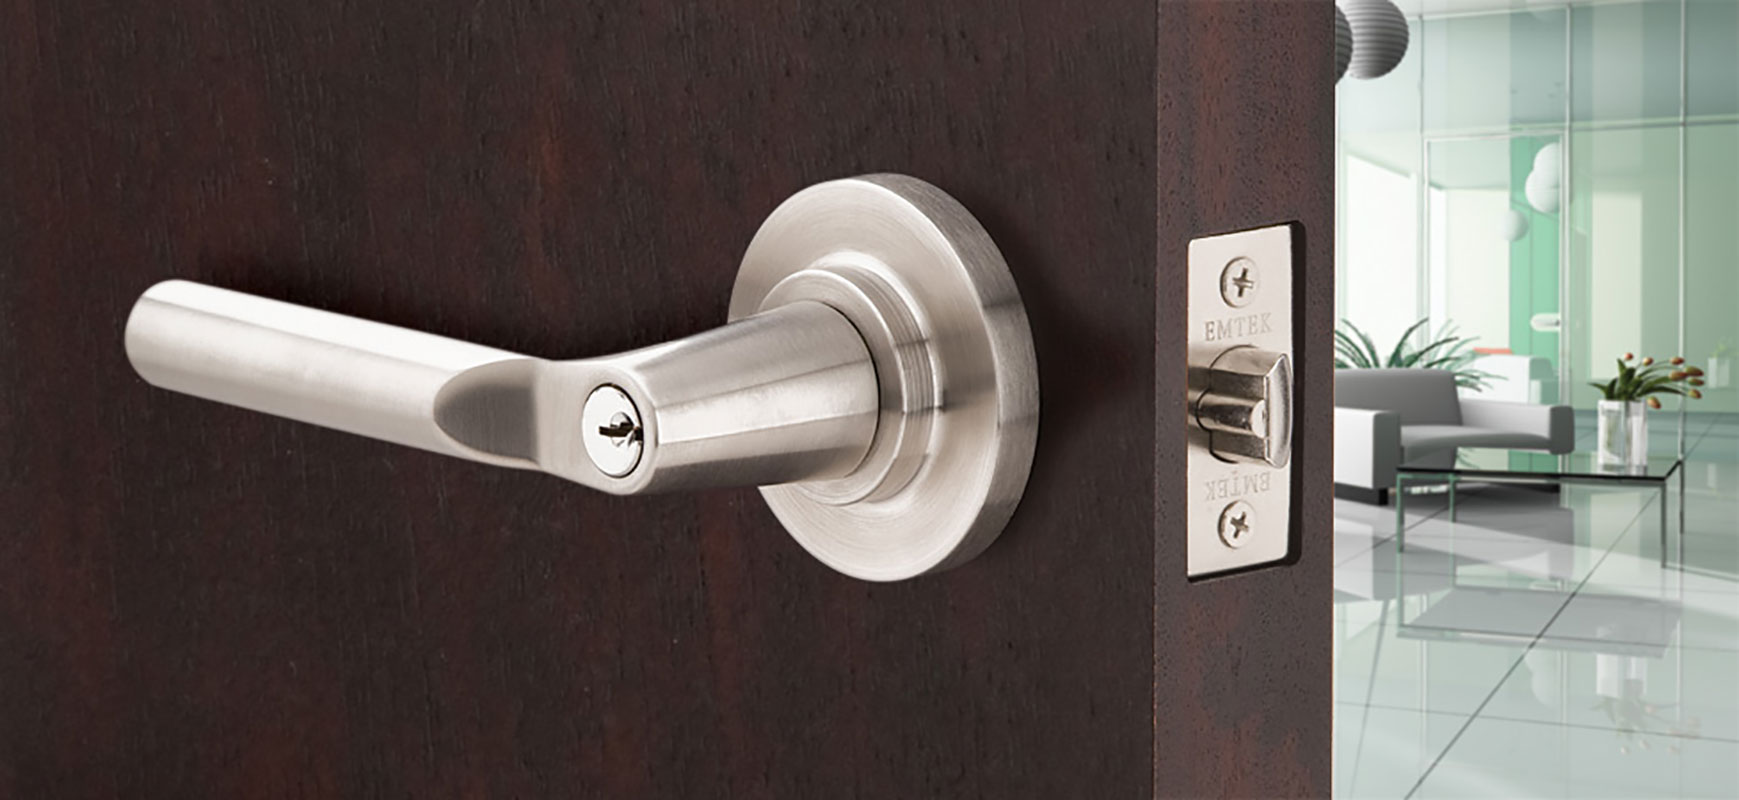 Gallery Collection Of Door Hardware Inspiration | Emtek ...